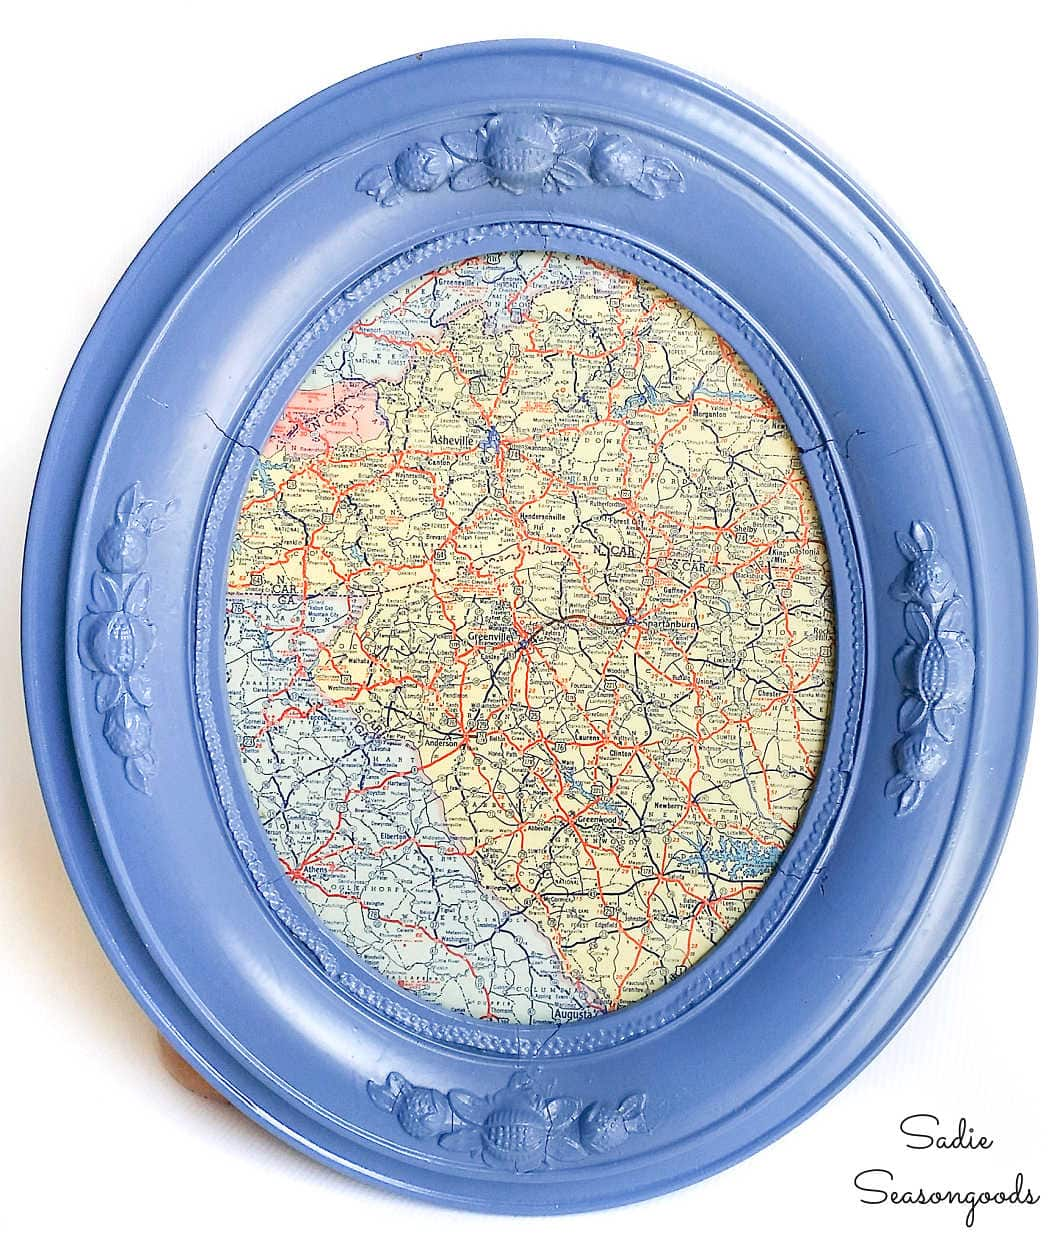 vintage road map in an antique oval frame